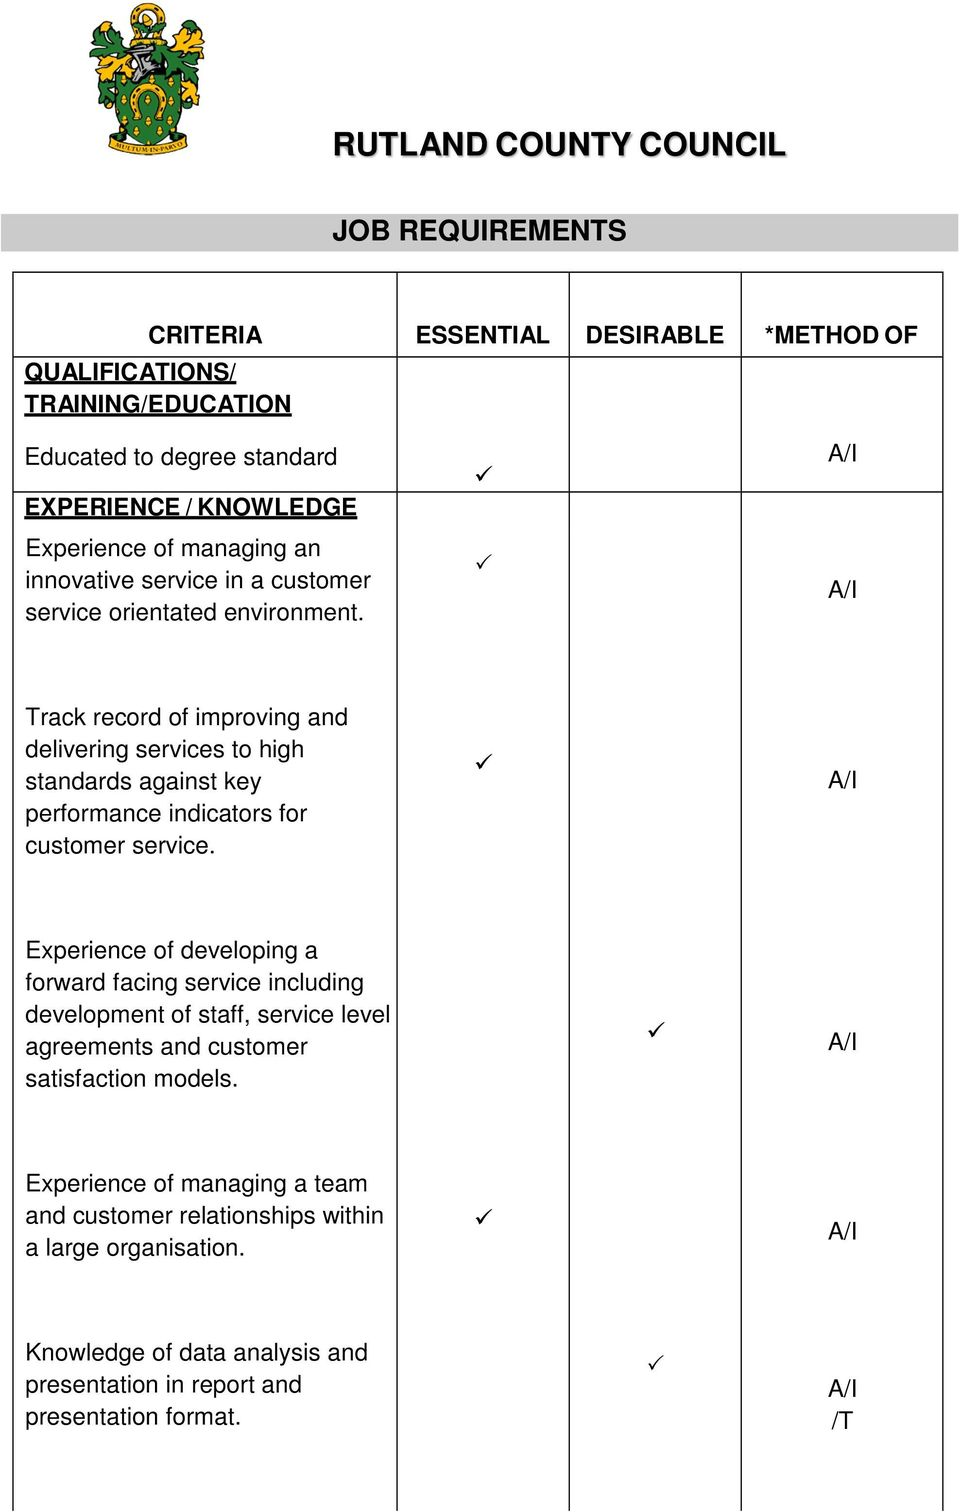 Track record of improving and delivering services to high standards against key performance indicators for customer service.